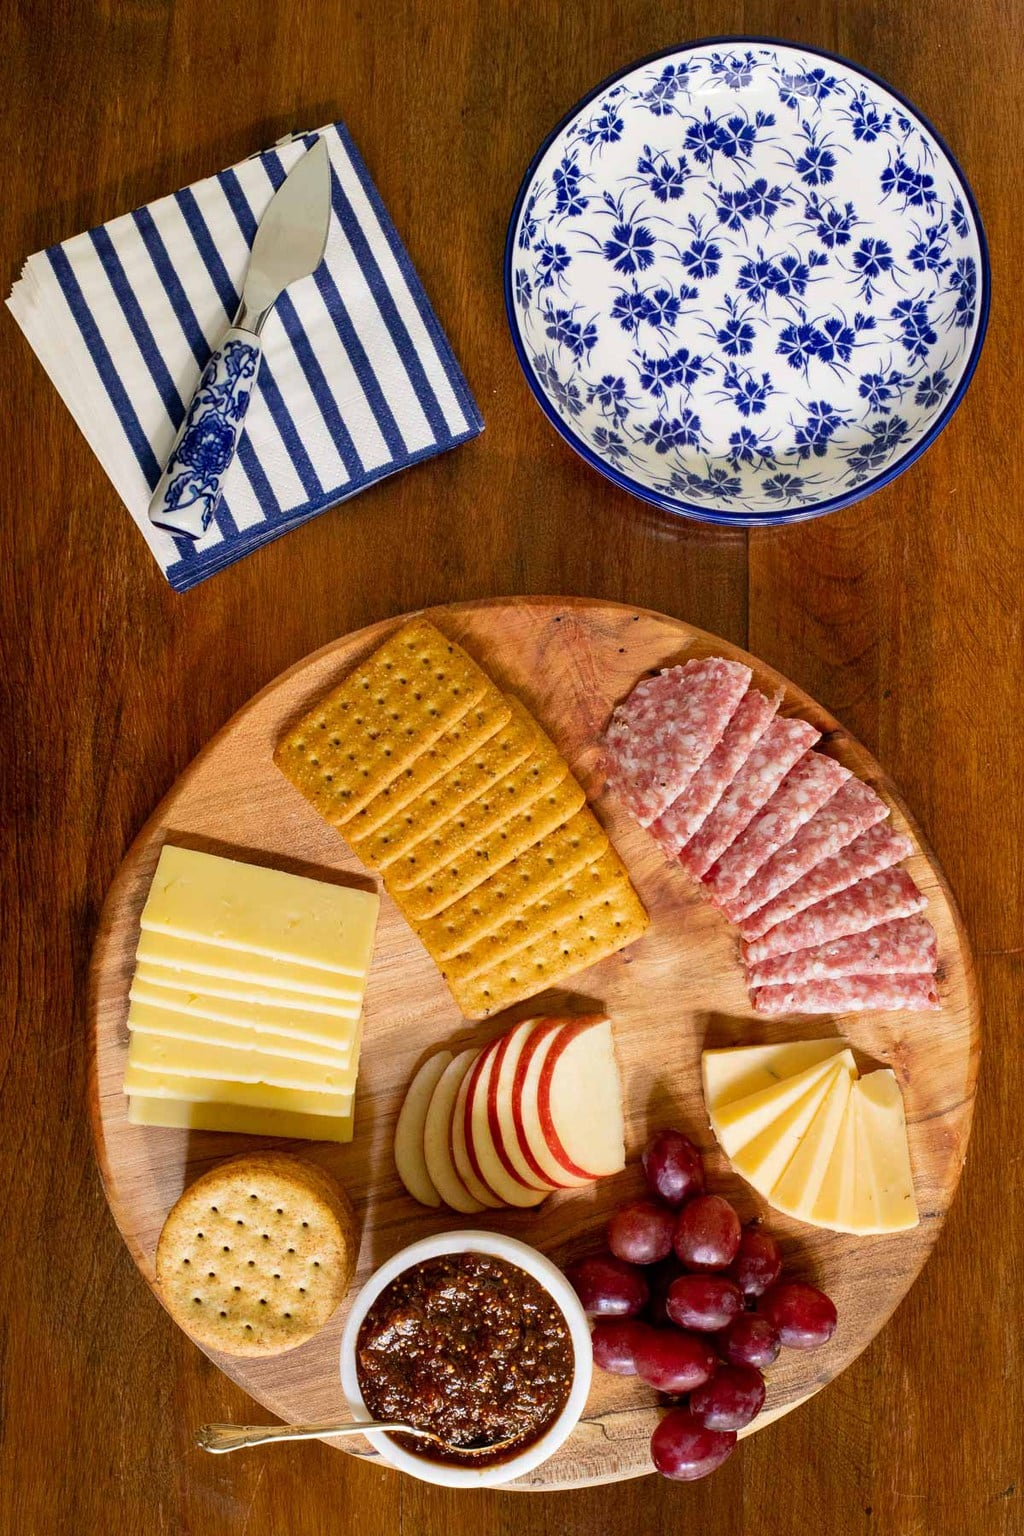 Overhead vertical photo of a wood appetizer tray featuring Sweet and Spicy Fig Spread and surrounded by crackers, slices of cheese and sausage, grapes and sliced apples.